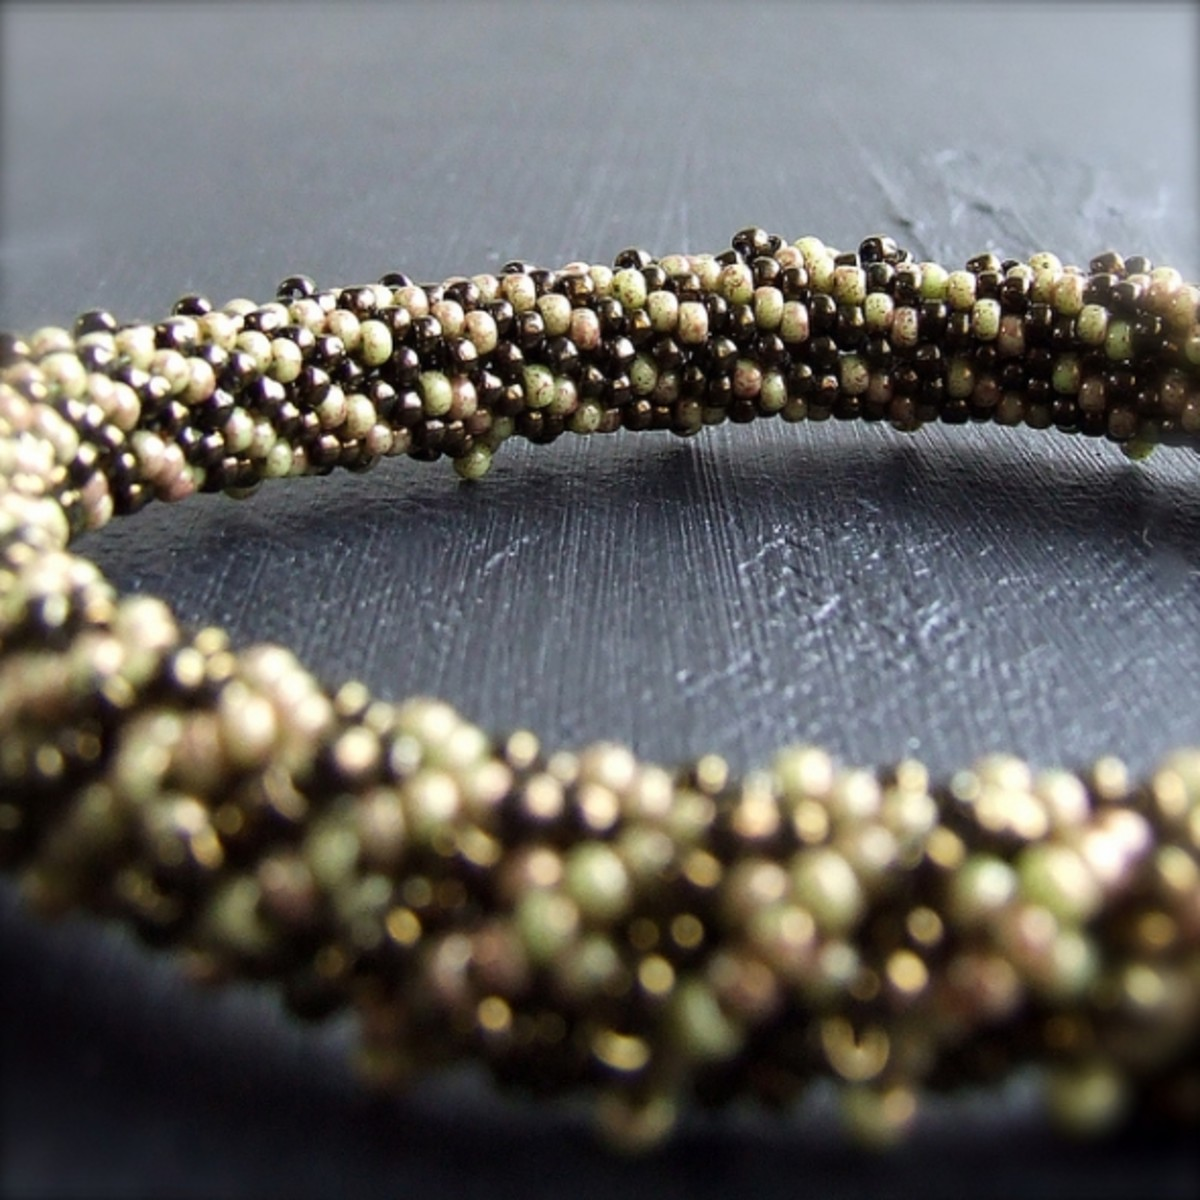 This gorgeous bangle is made up of 12 ft of thread and over 1000 beads!